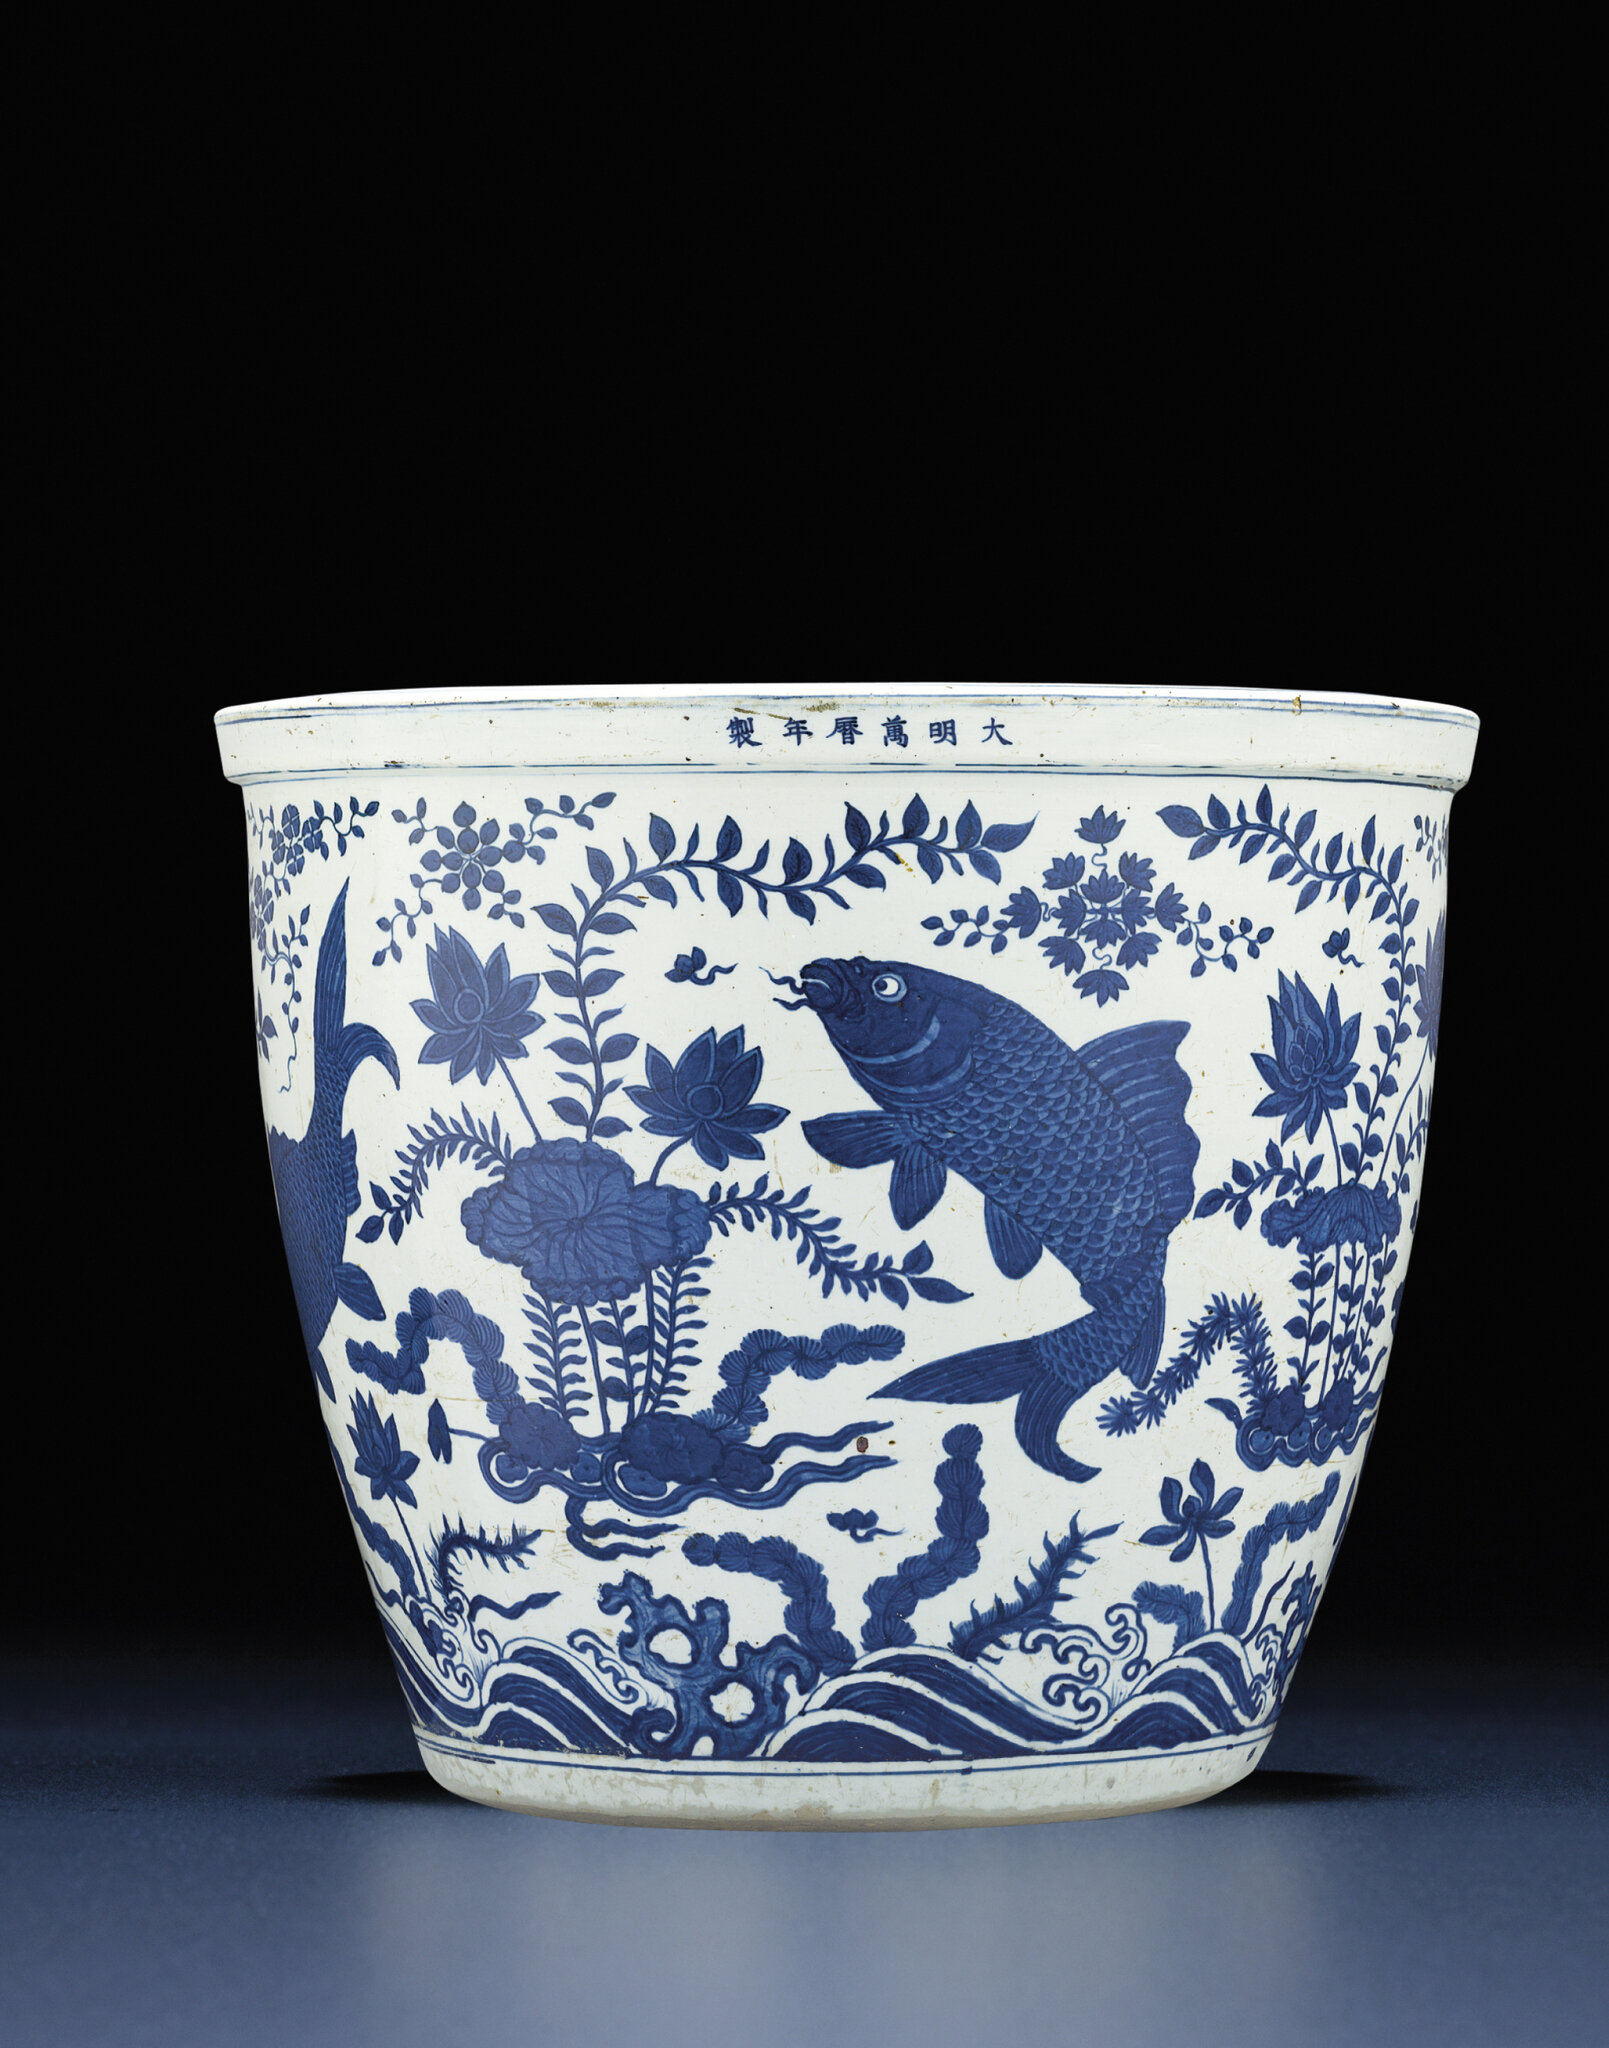 An extremely rare Ming large blue and white 'carp' fishbowl